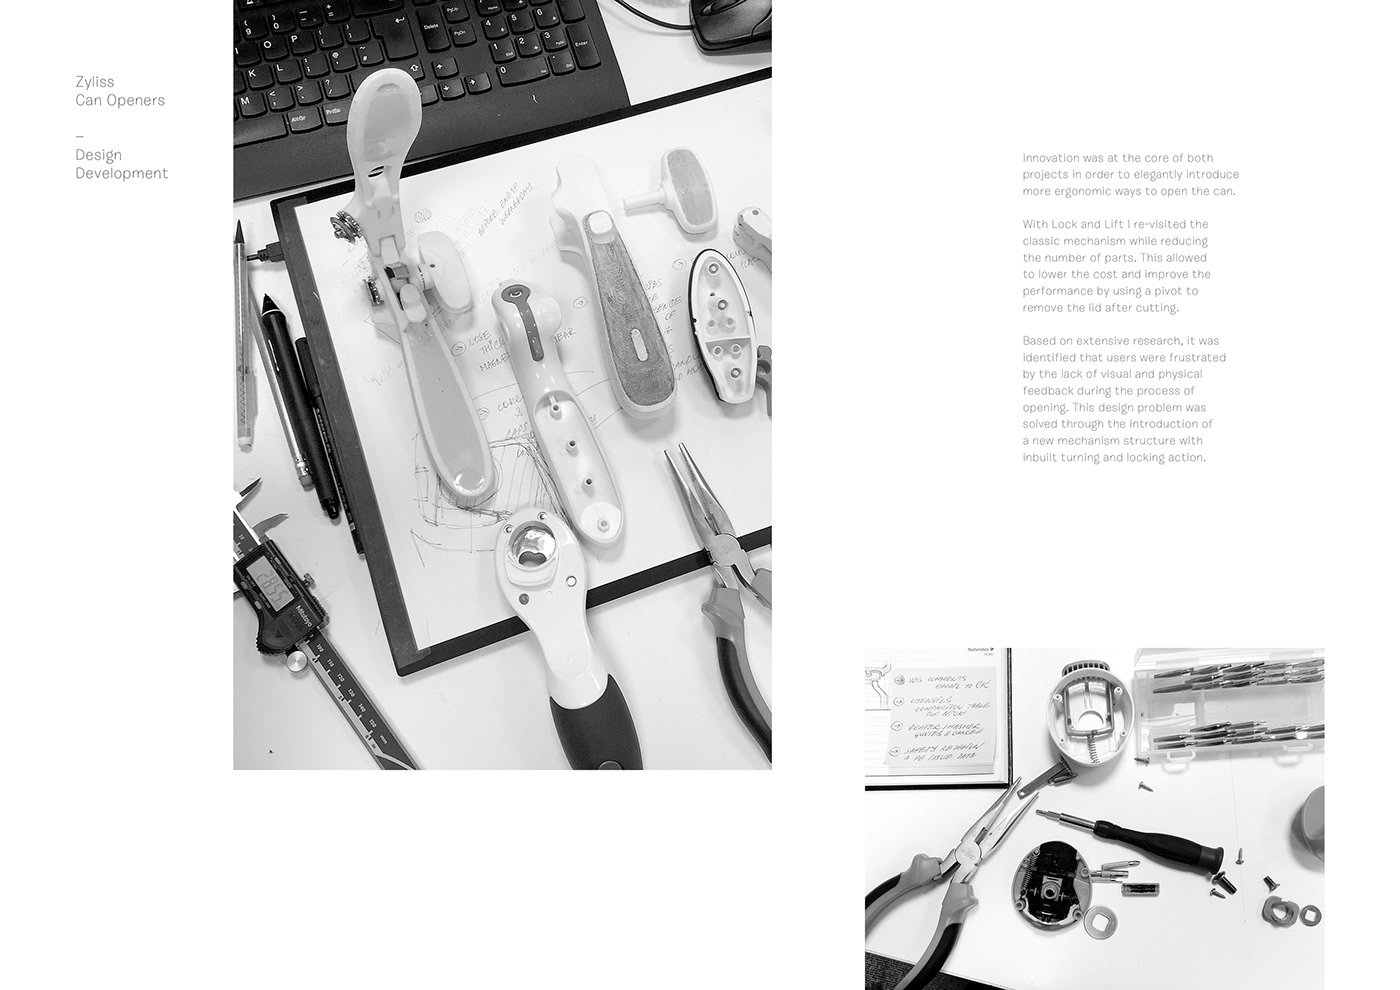 Zyliss can opener industrial design  romanovadesign sketches